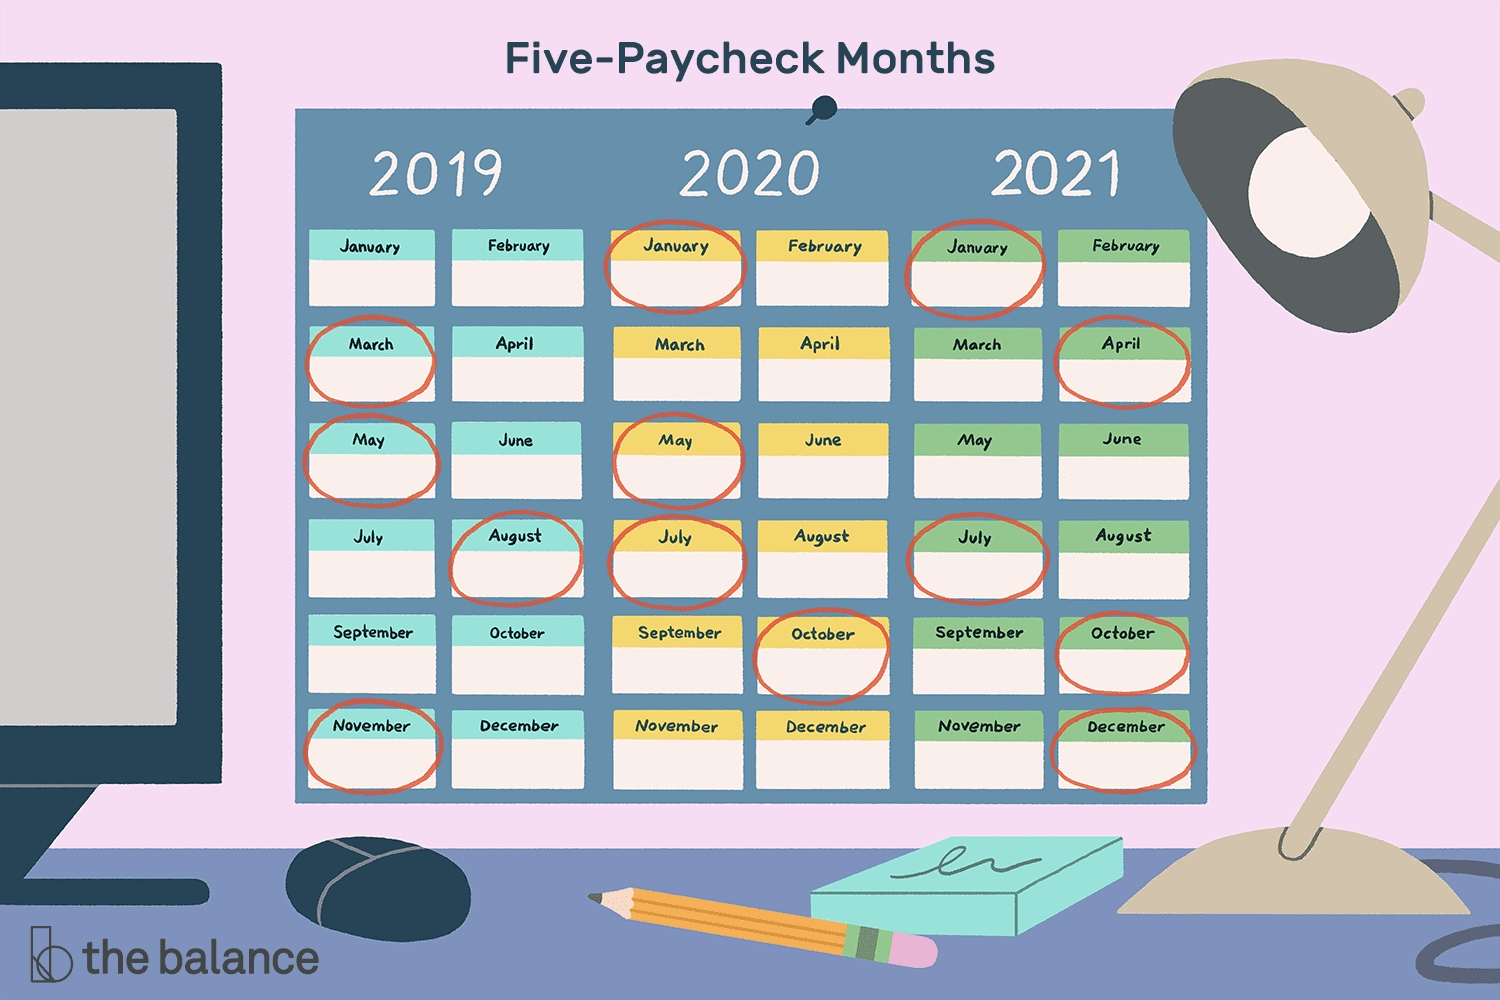 Months In Which You Receive 5 Paychecks From 2019-2029 regarding Federal Government Pay Period Calendar 2020